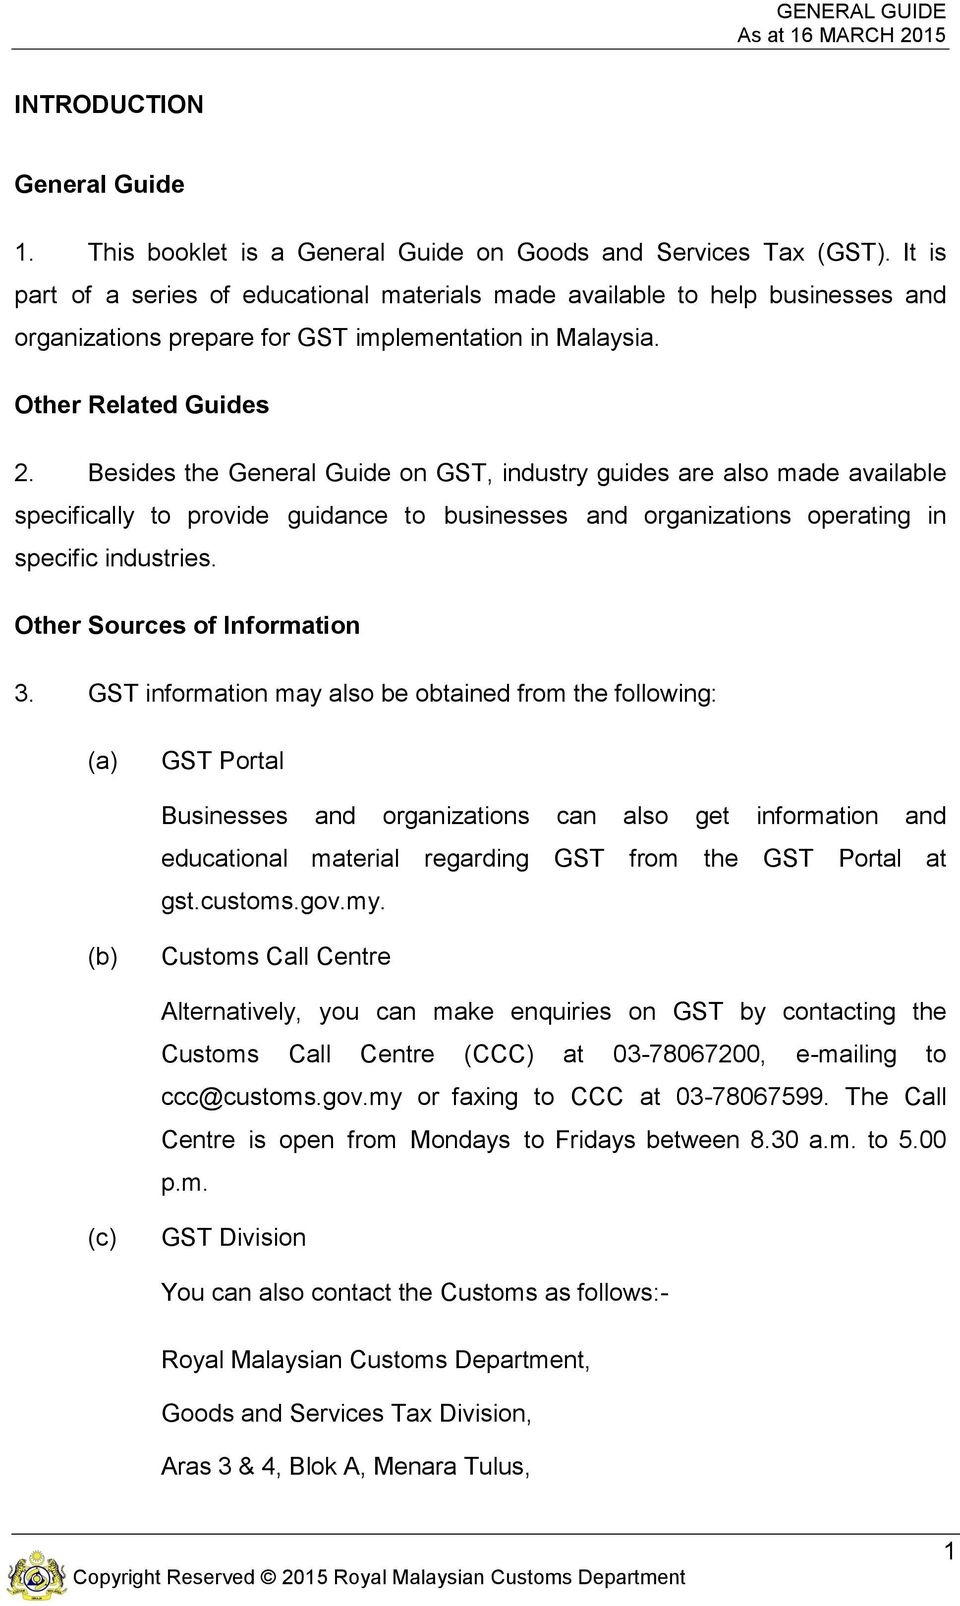 Besides the General Guide on GST, industry guides are also made available specifically to provide guidance to businesses and organizations operating in specific industries.